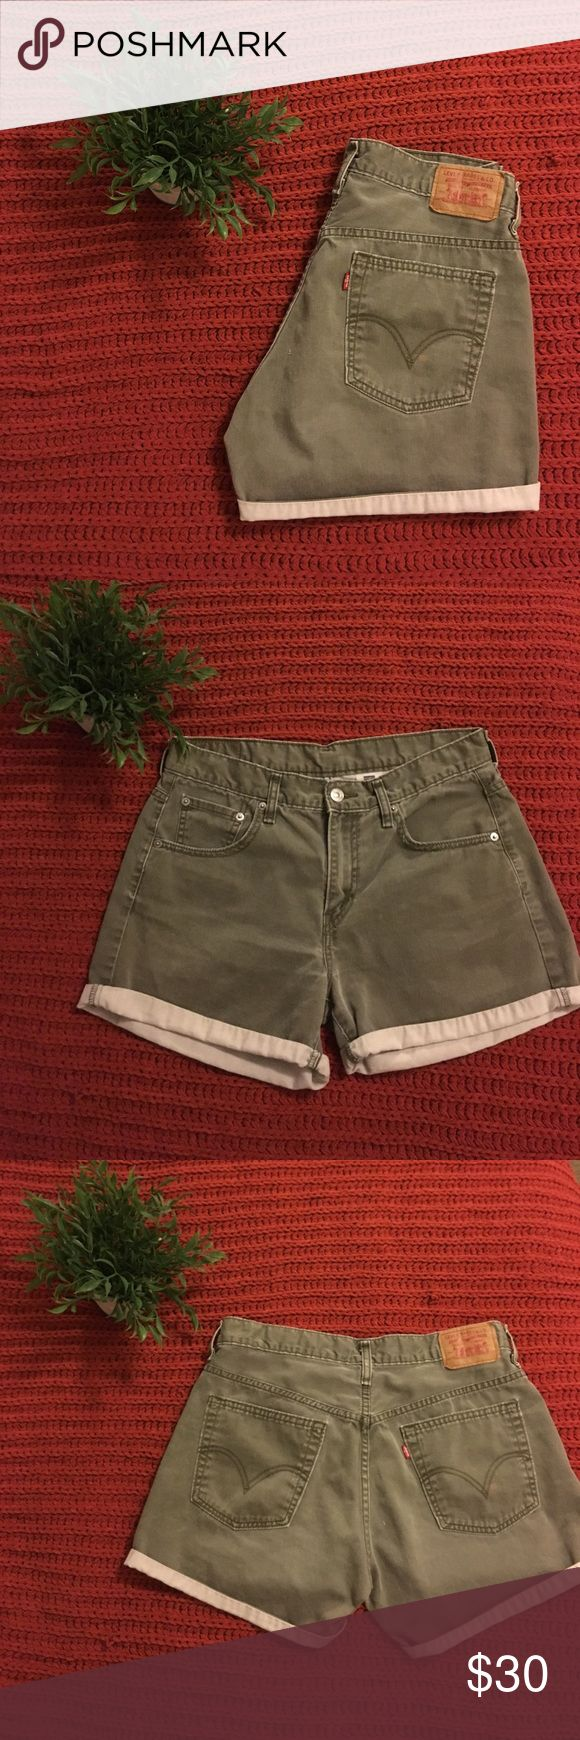 vintage olive green Levis! size L! these authentic Levis are labeled as a 10, but they would fit someone who wears a 7-9. great condition- only flaw is a faint rust colored stain on the butt pocket (see 1st picture). not noticeable when wearing! these can be rolled up (as pictured), or rolled down for more coverage. these would love to go to Coachella... :) Urban Outfitters Shorts Jean Shorts